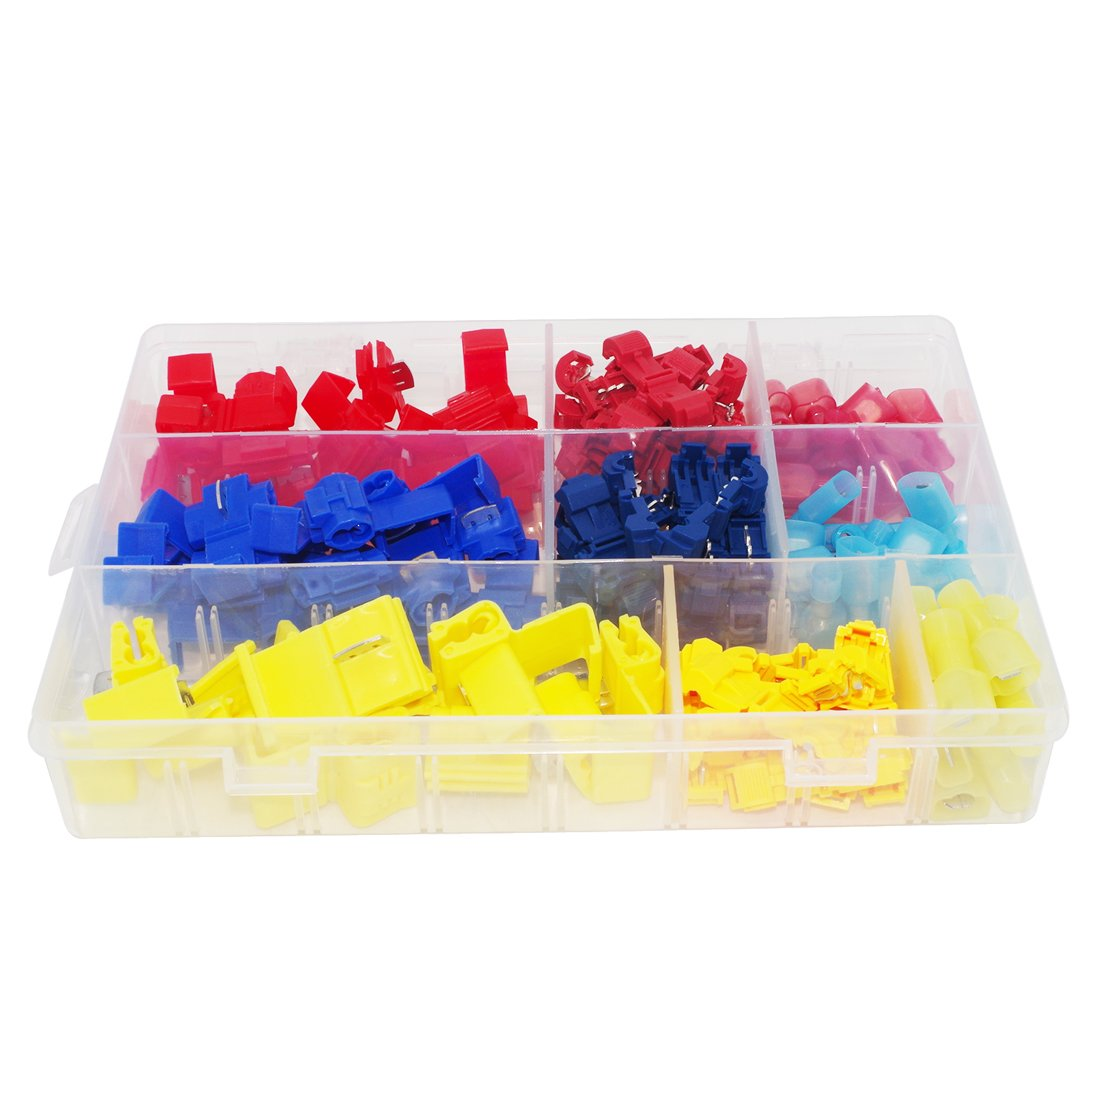 Haobase 120pcs Nylon Fully Insulated Male Spade Terminals and Quick Splice T-Tap Electrical Wire Connector Assortment With Box CECOMINOD050792